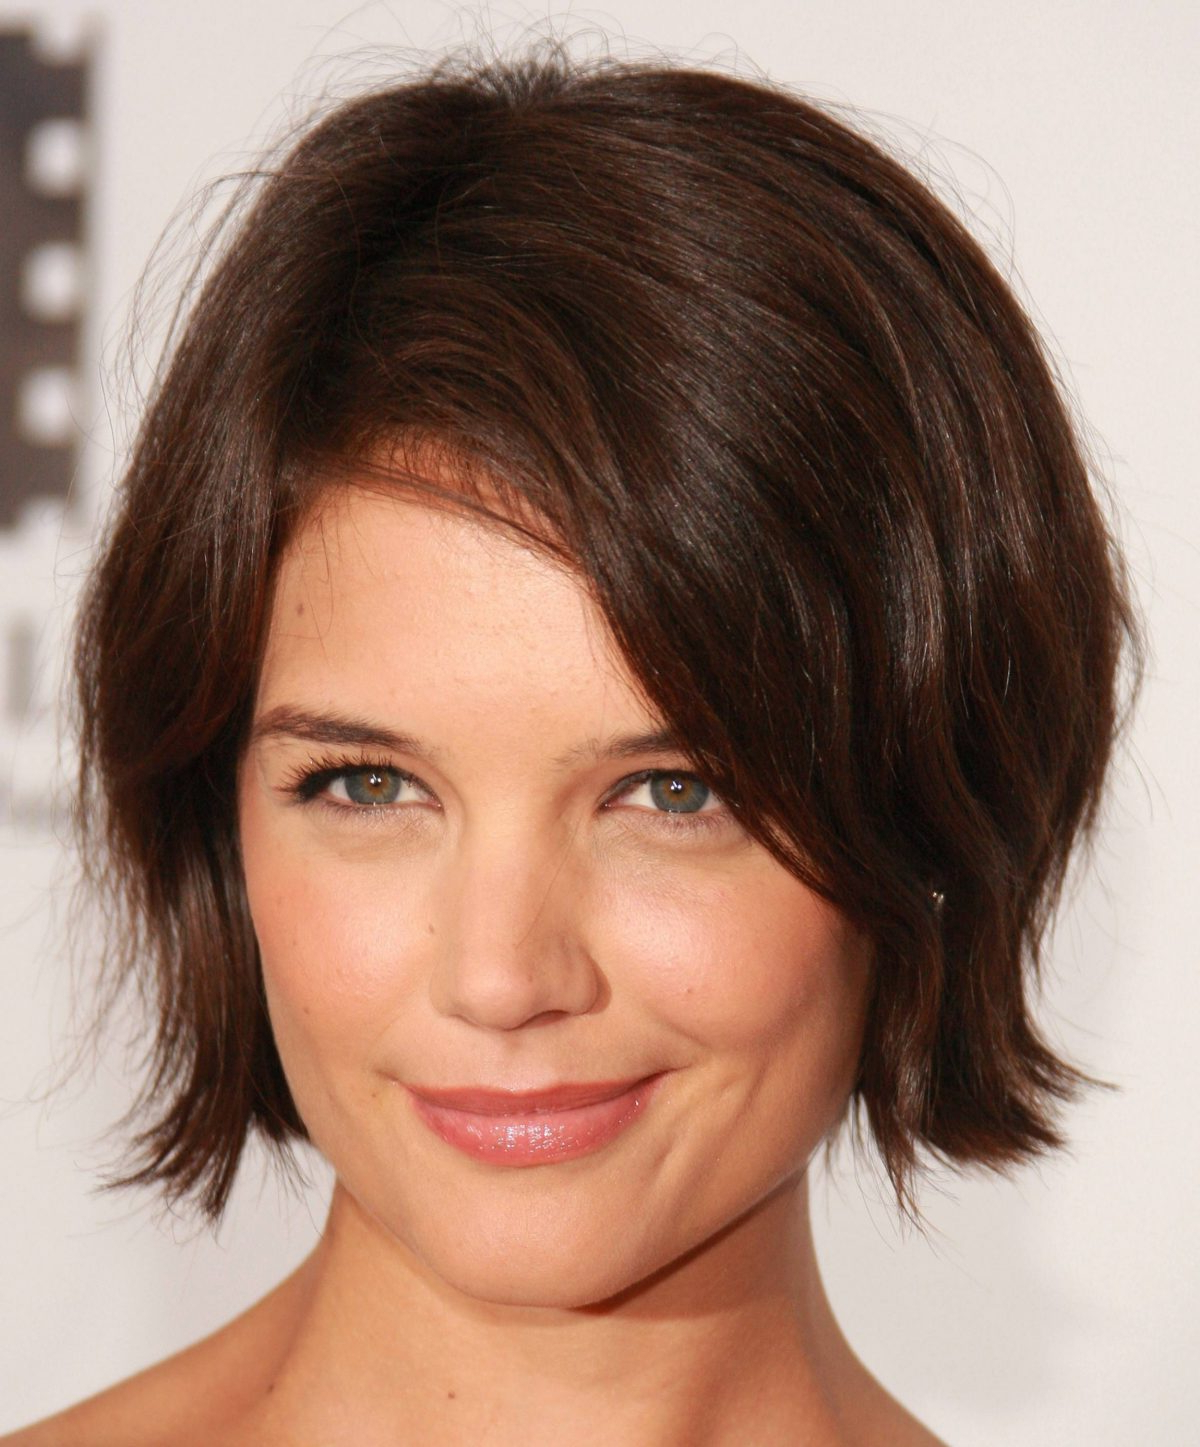 Best Short Hairstyles – Cute Hair Cut Guide For Round Face Shape Inside Short Hairstyles For Chubby Cheeks (View 11 of 25)